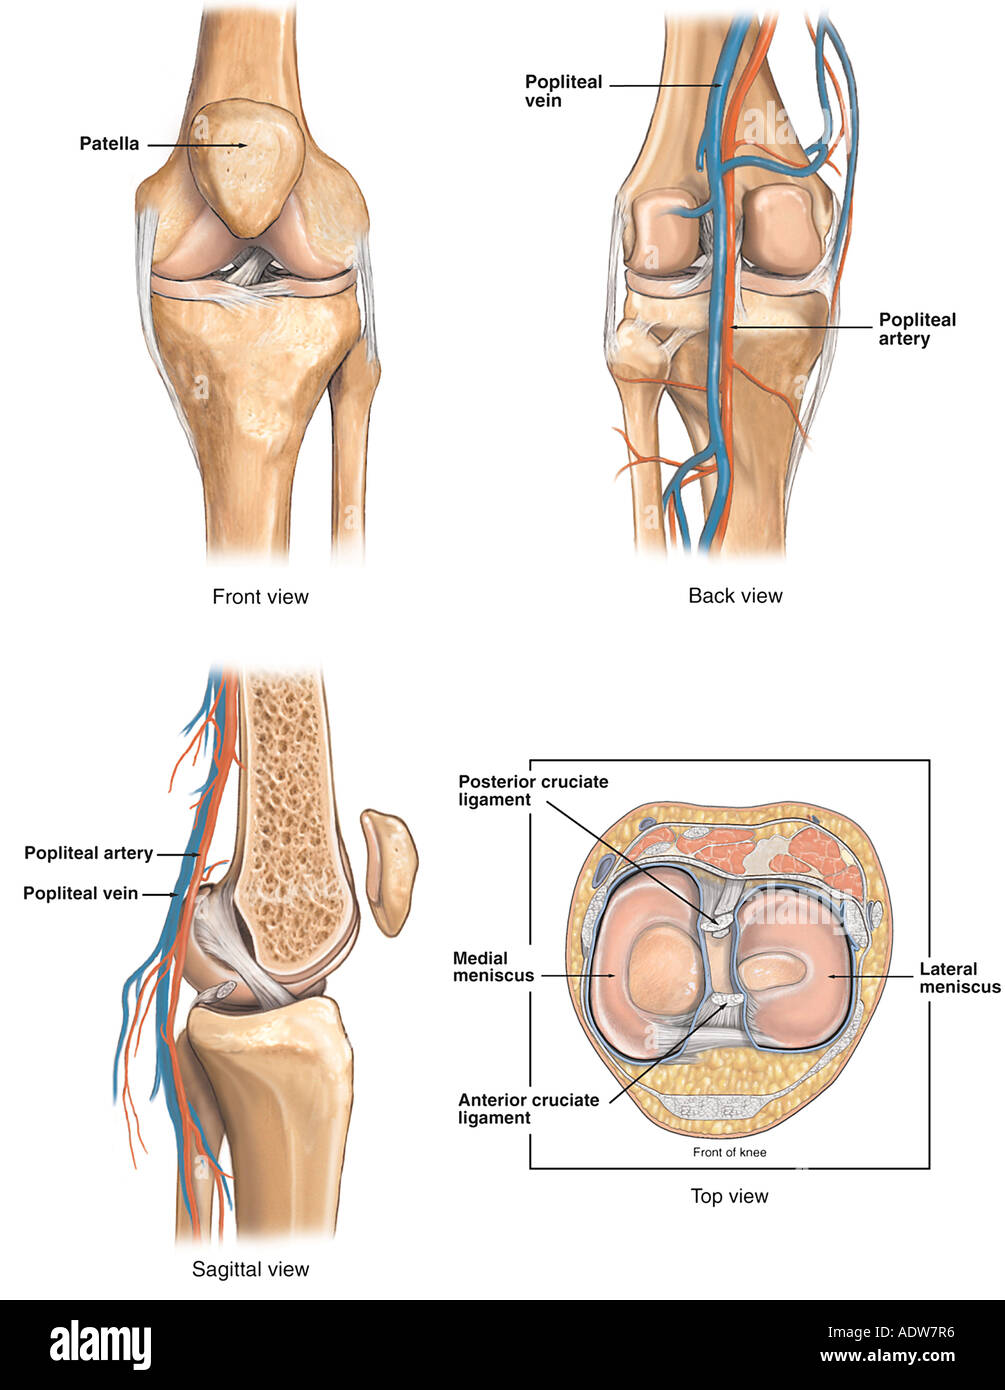 Anatomy of the Knee Joint Stock Photo: 7712437 - Alamy